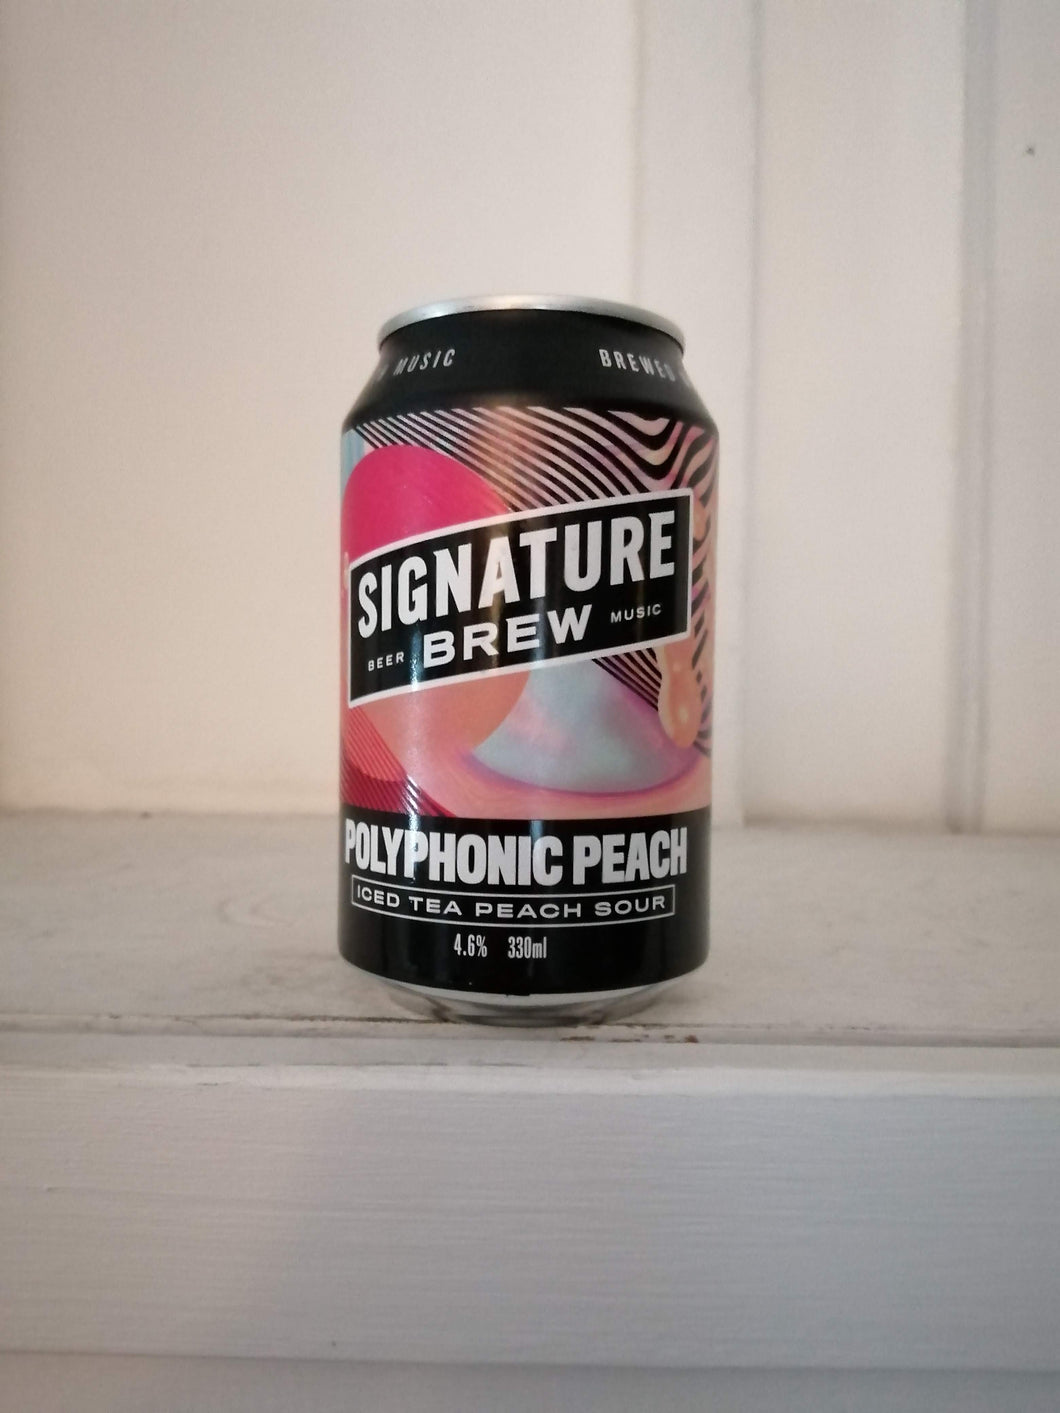 Signature Brew Polyphonic Peach 4.6% (330ml can)